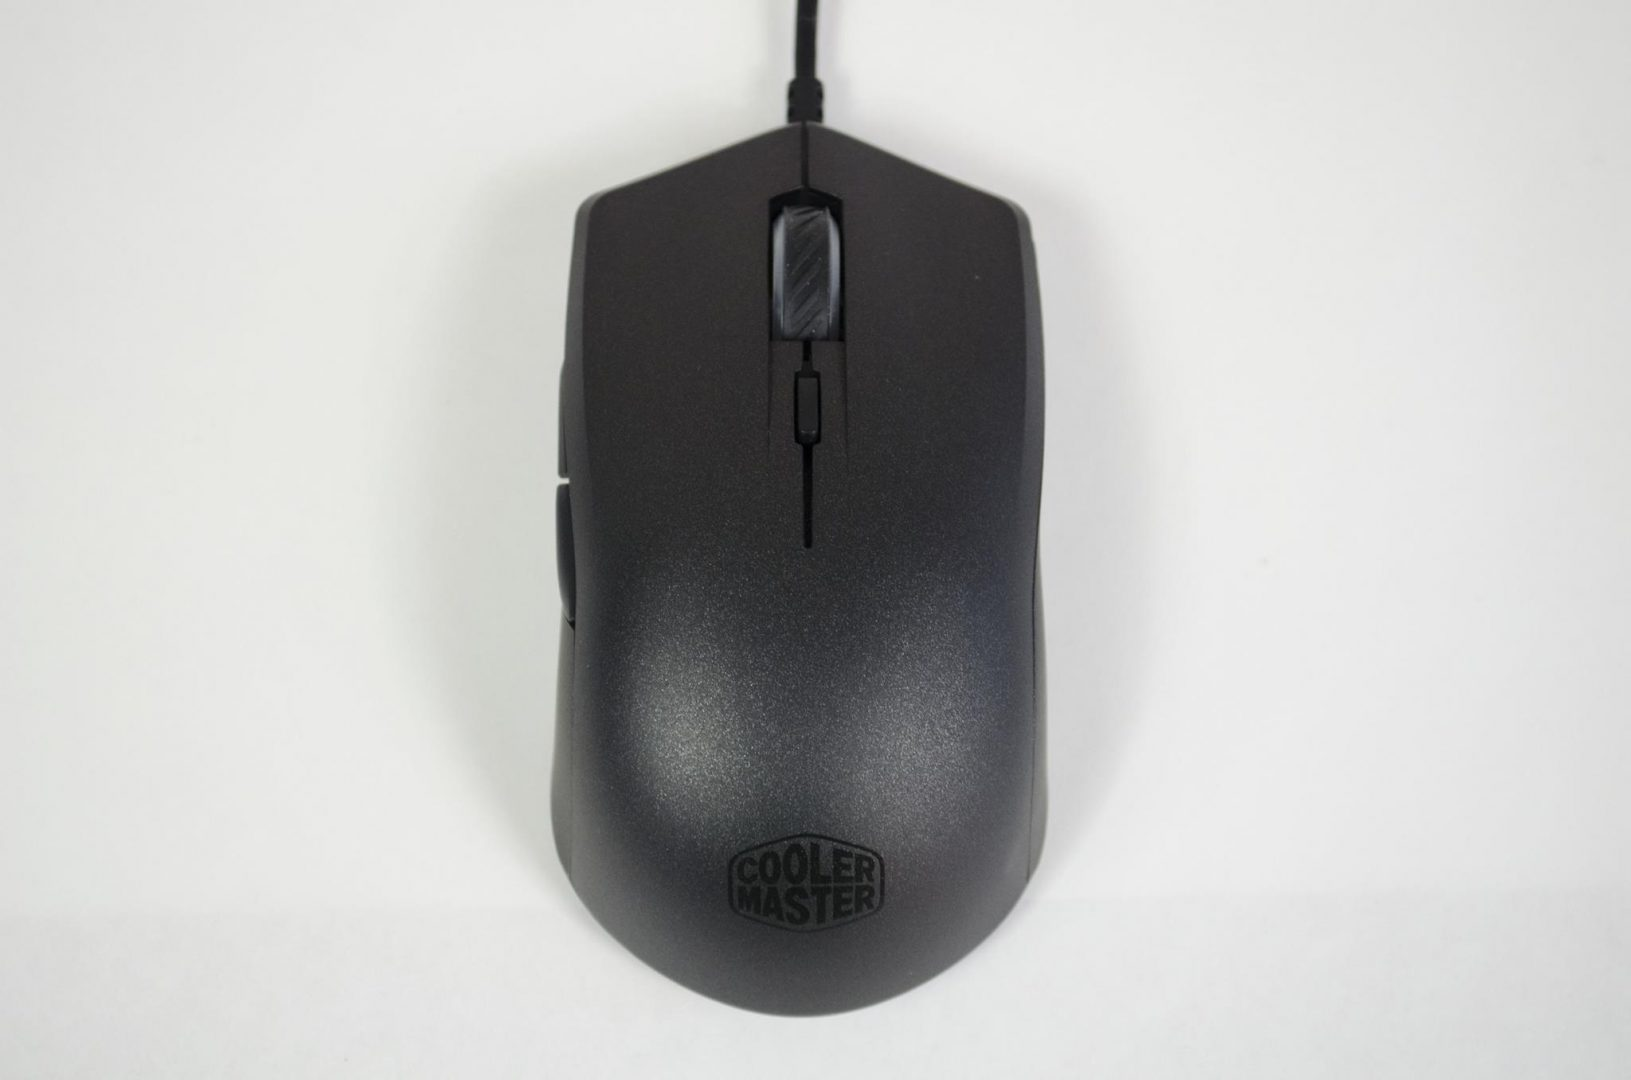 Cooler Master MasterMouse s Review_5